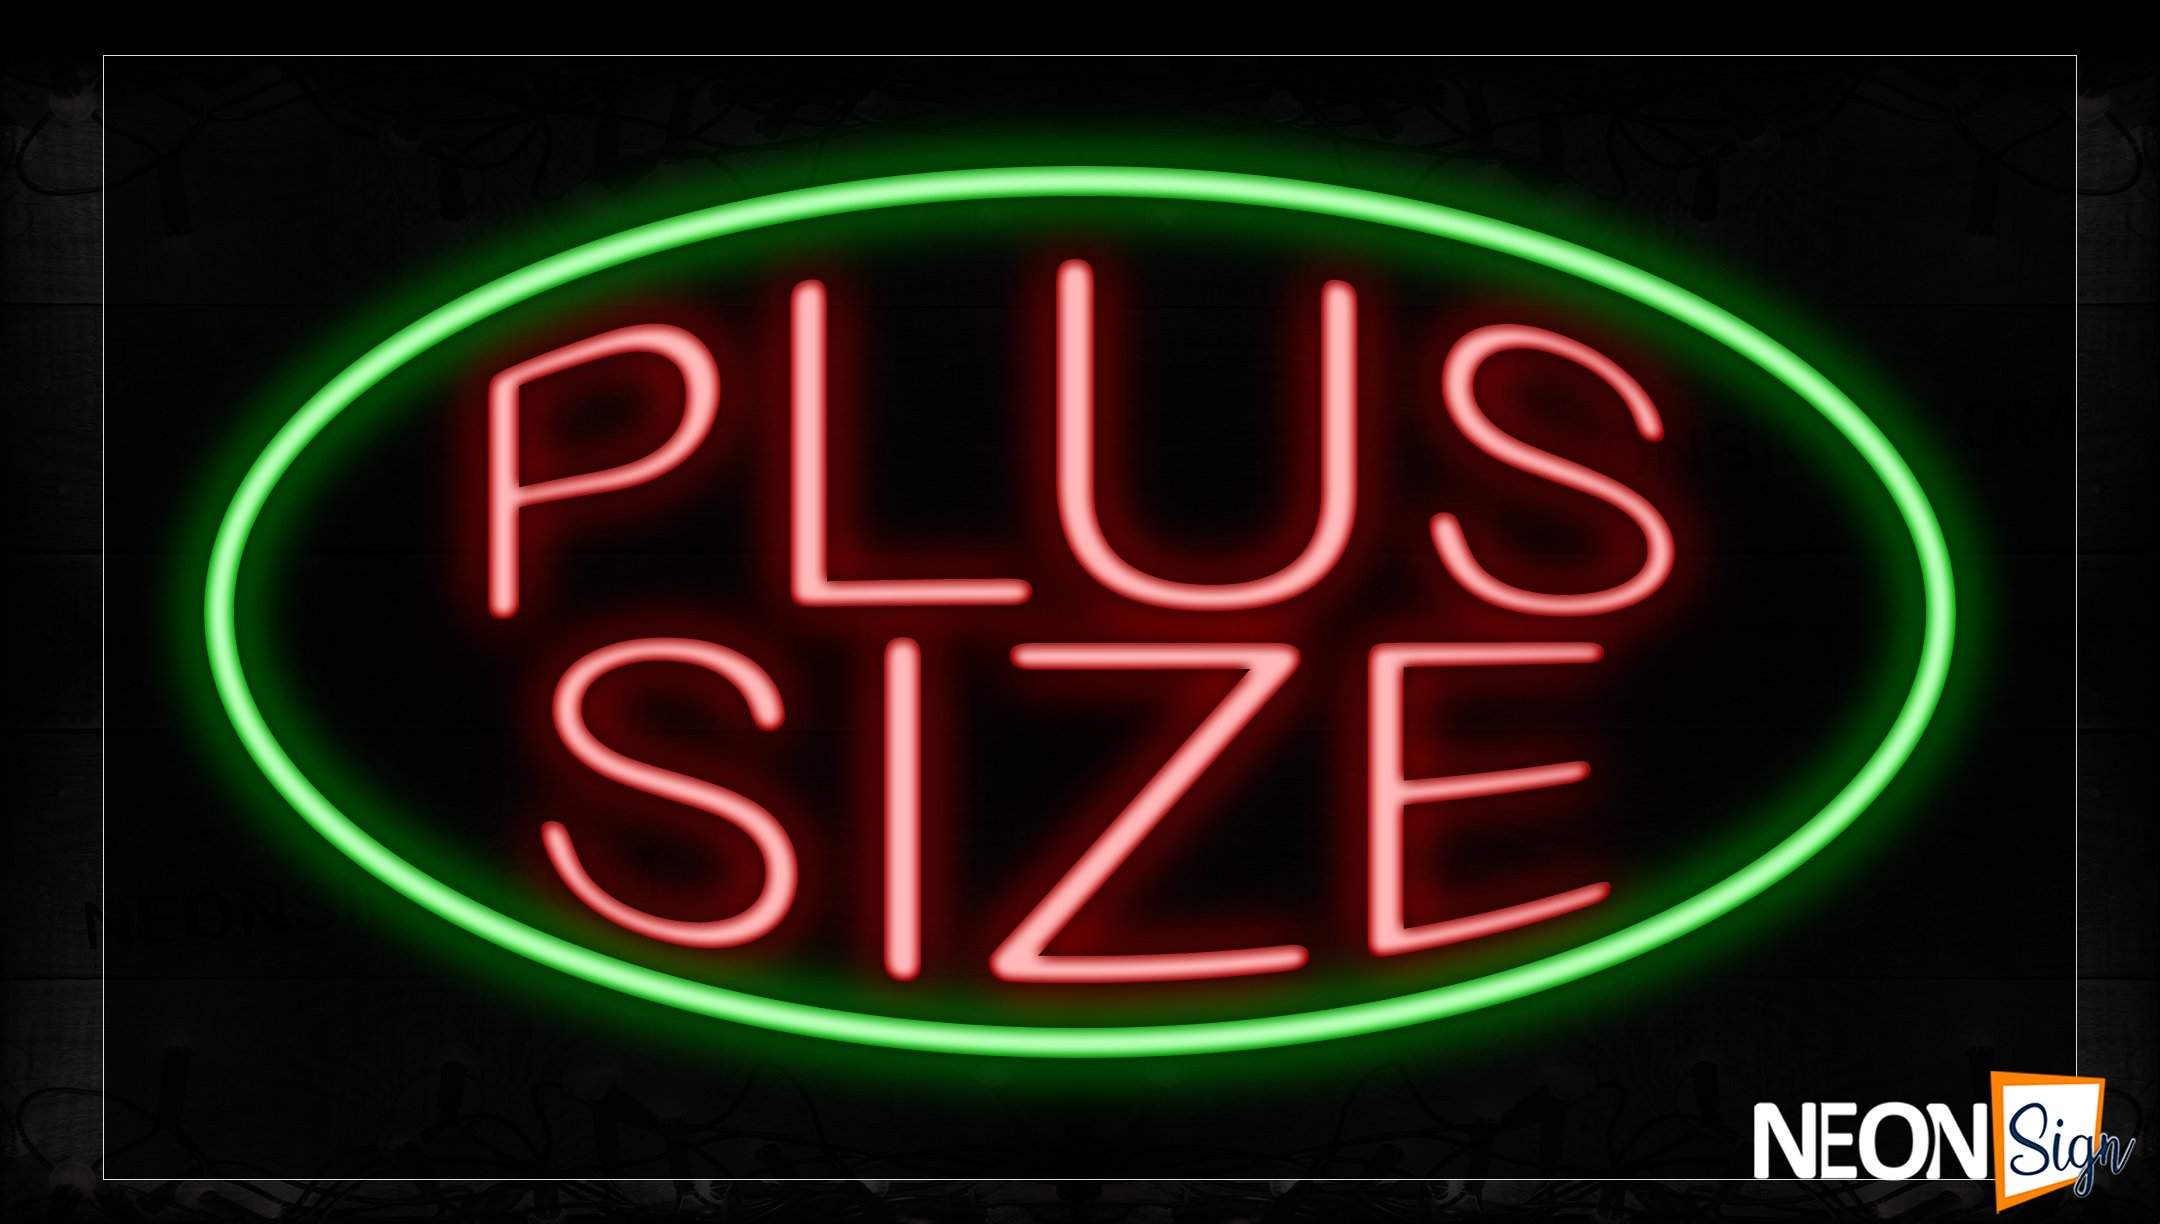 Image of 10694 Plus Size In Red With Green Oval Neon Signs_17x30 Black Backing